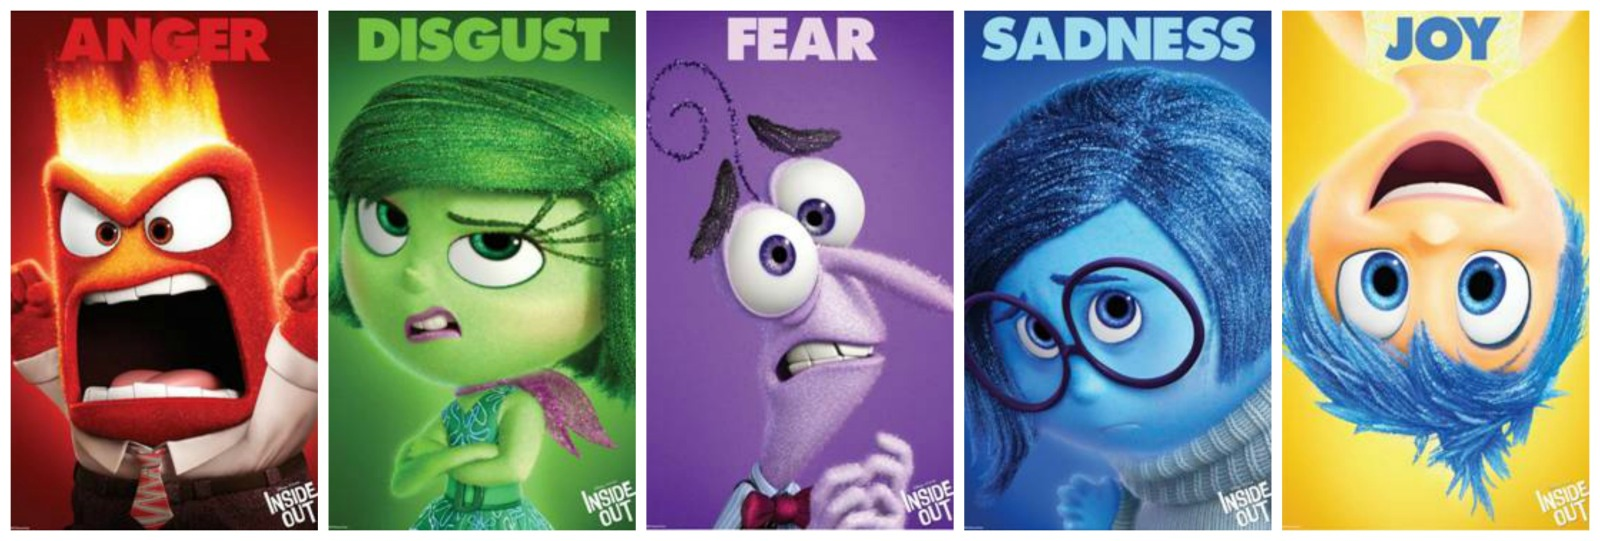 Disney Pixar Inside Out Character Collage